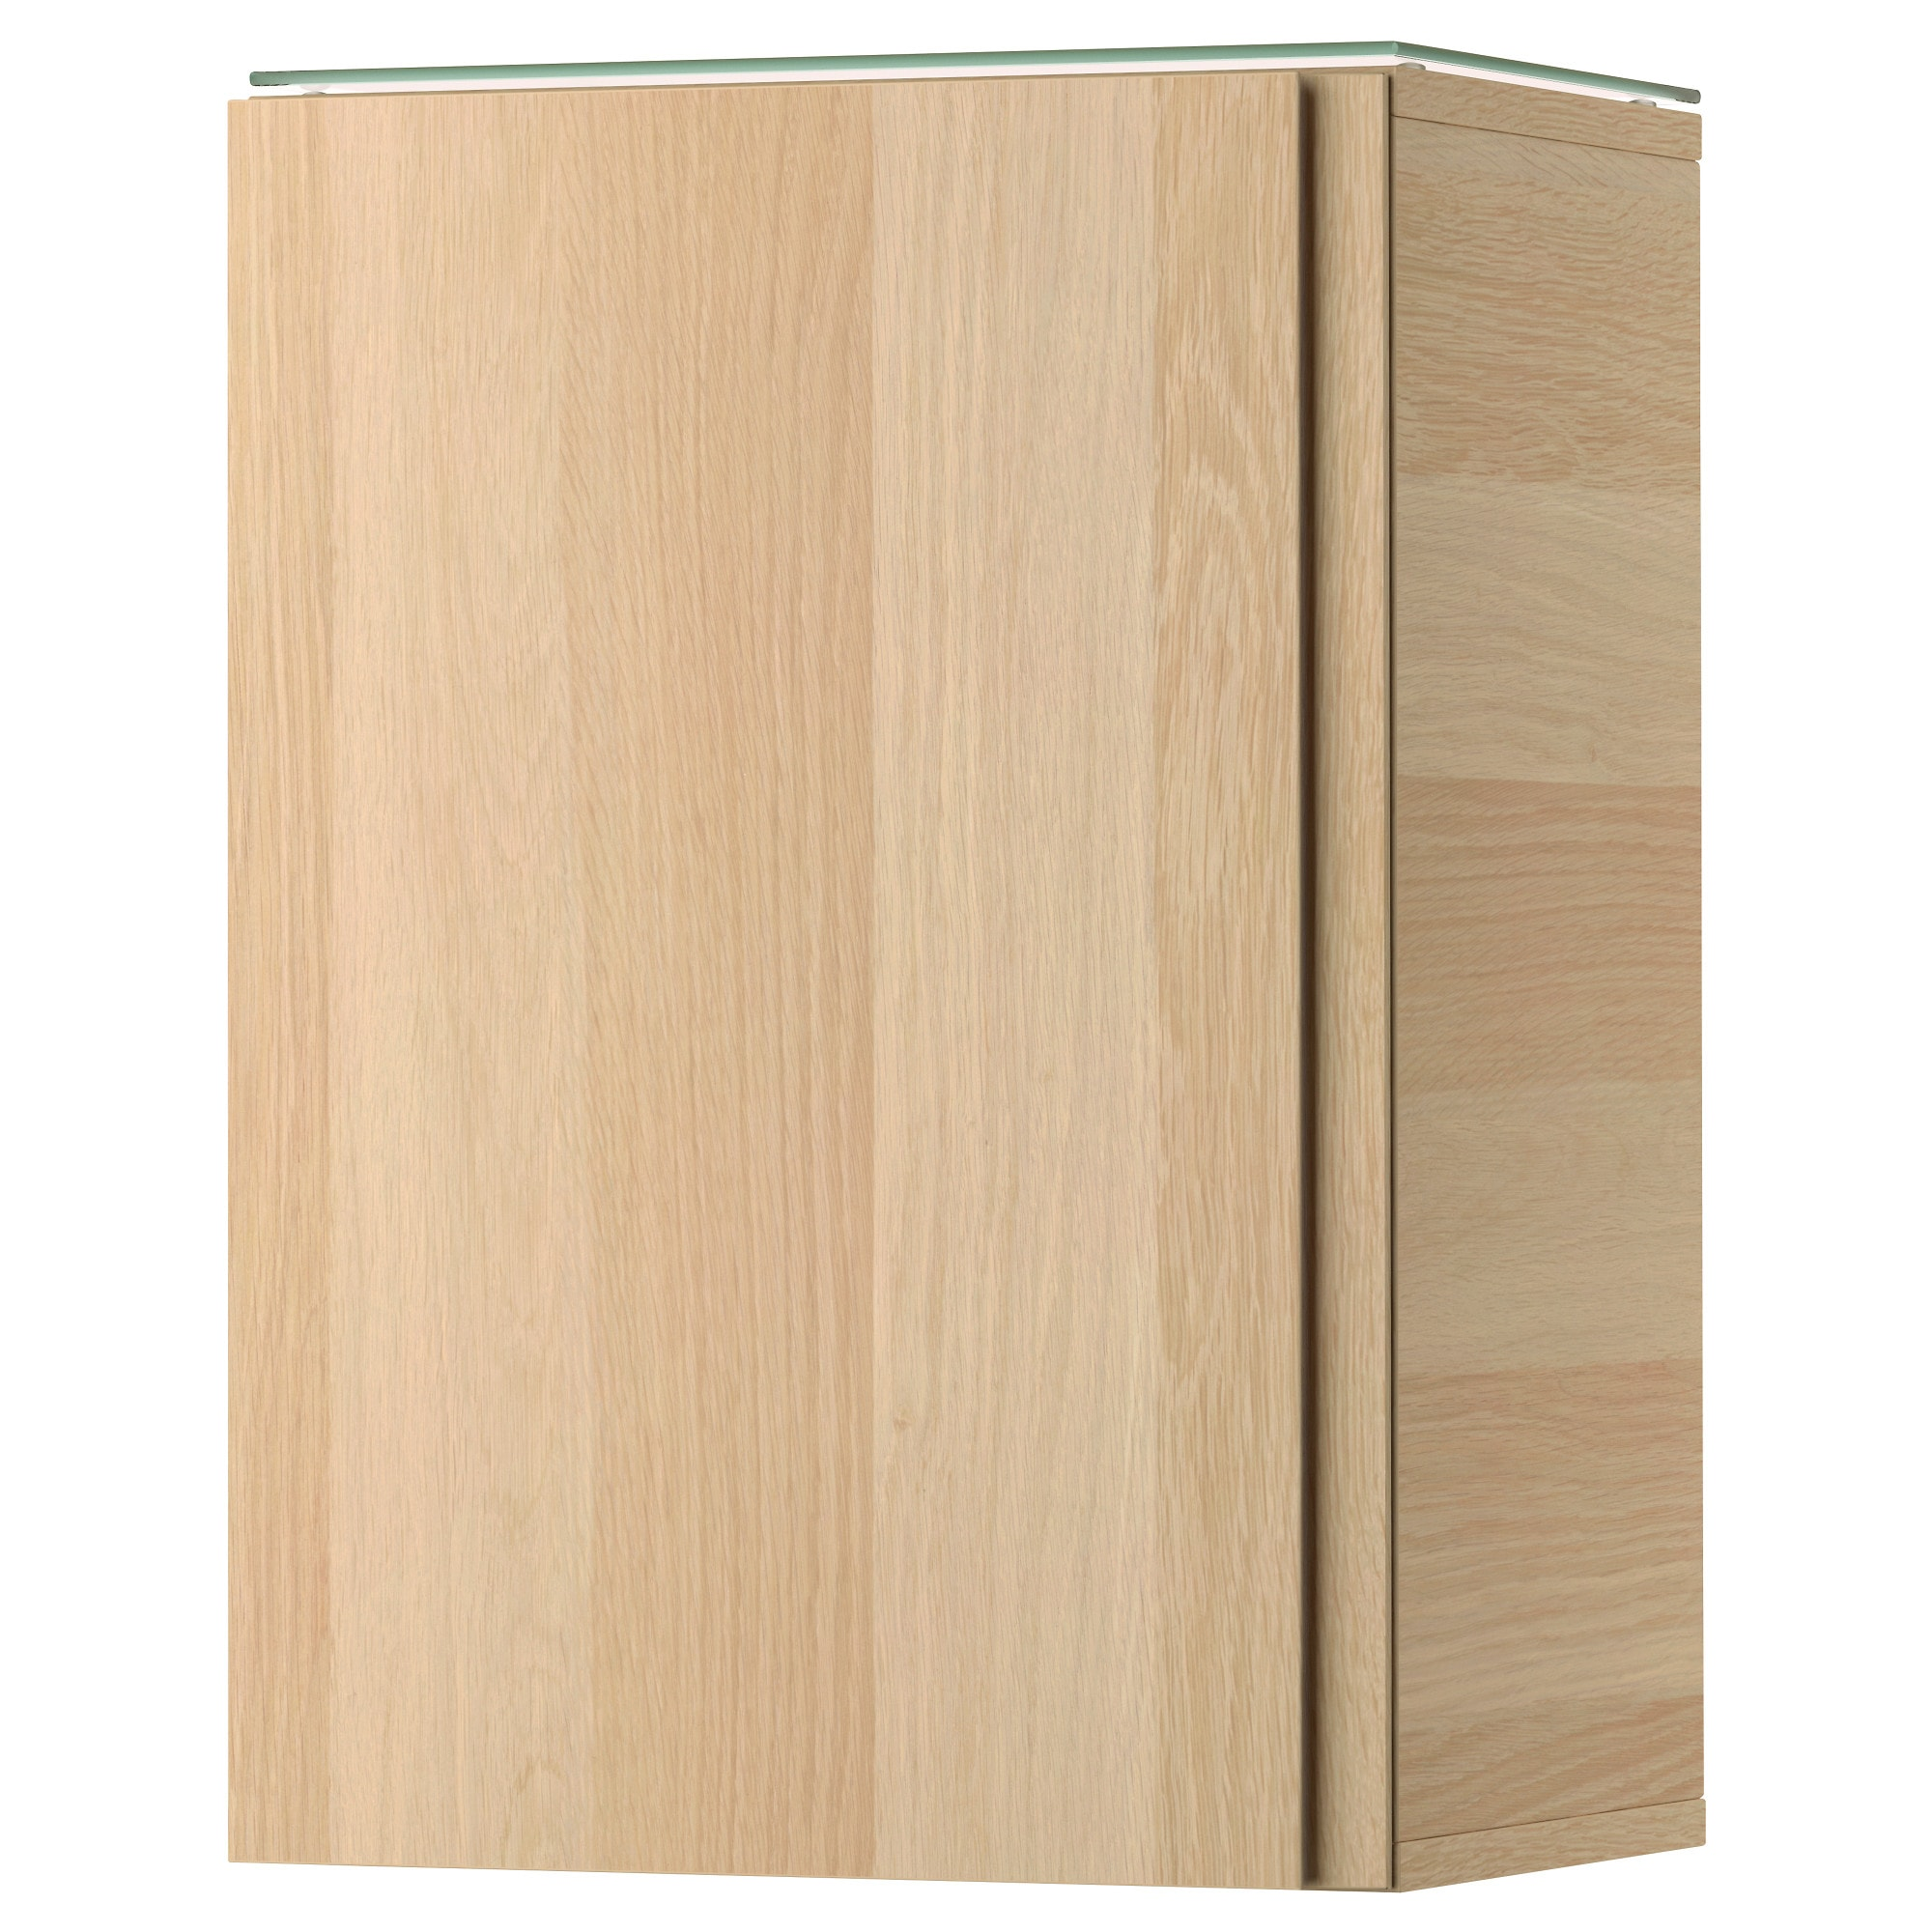 godmorgon wall cabinet with 1 door white stained oak effect 40x30x58 cm ikea